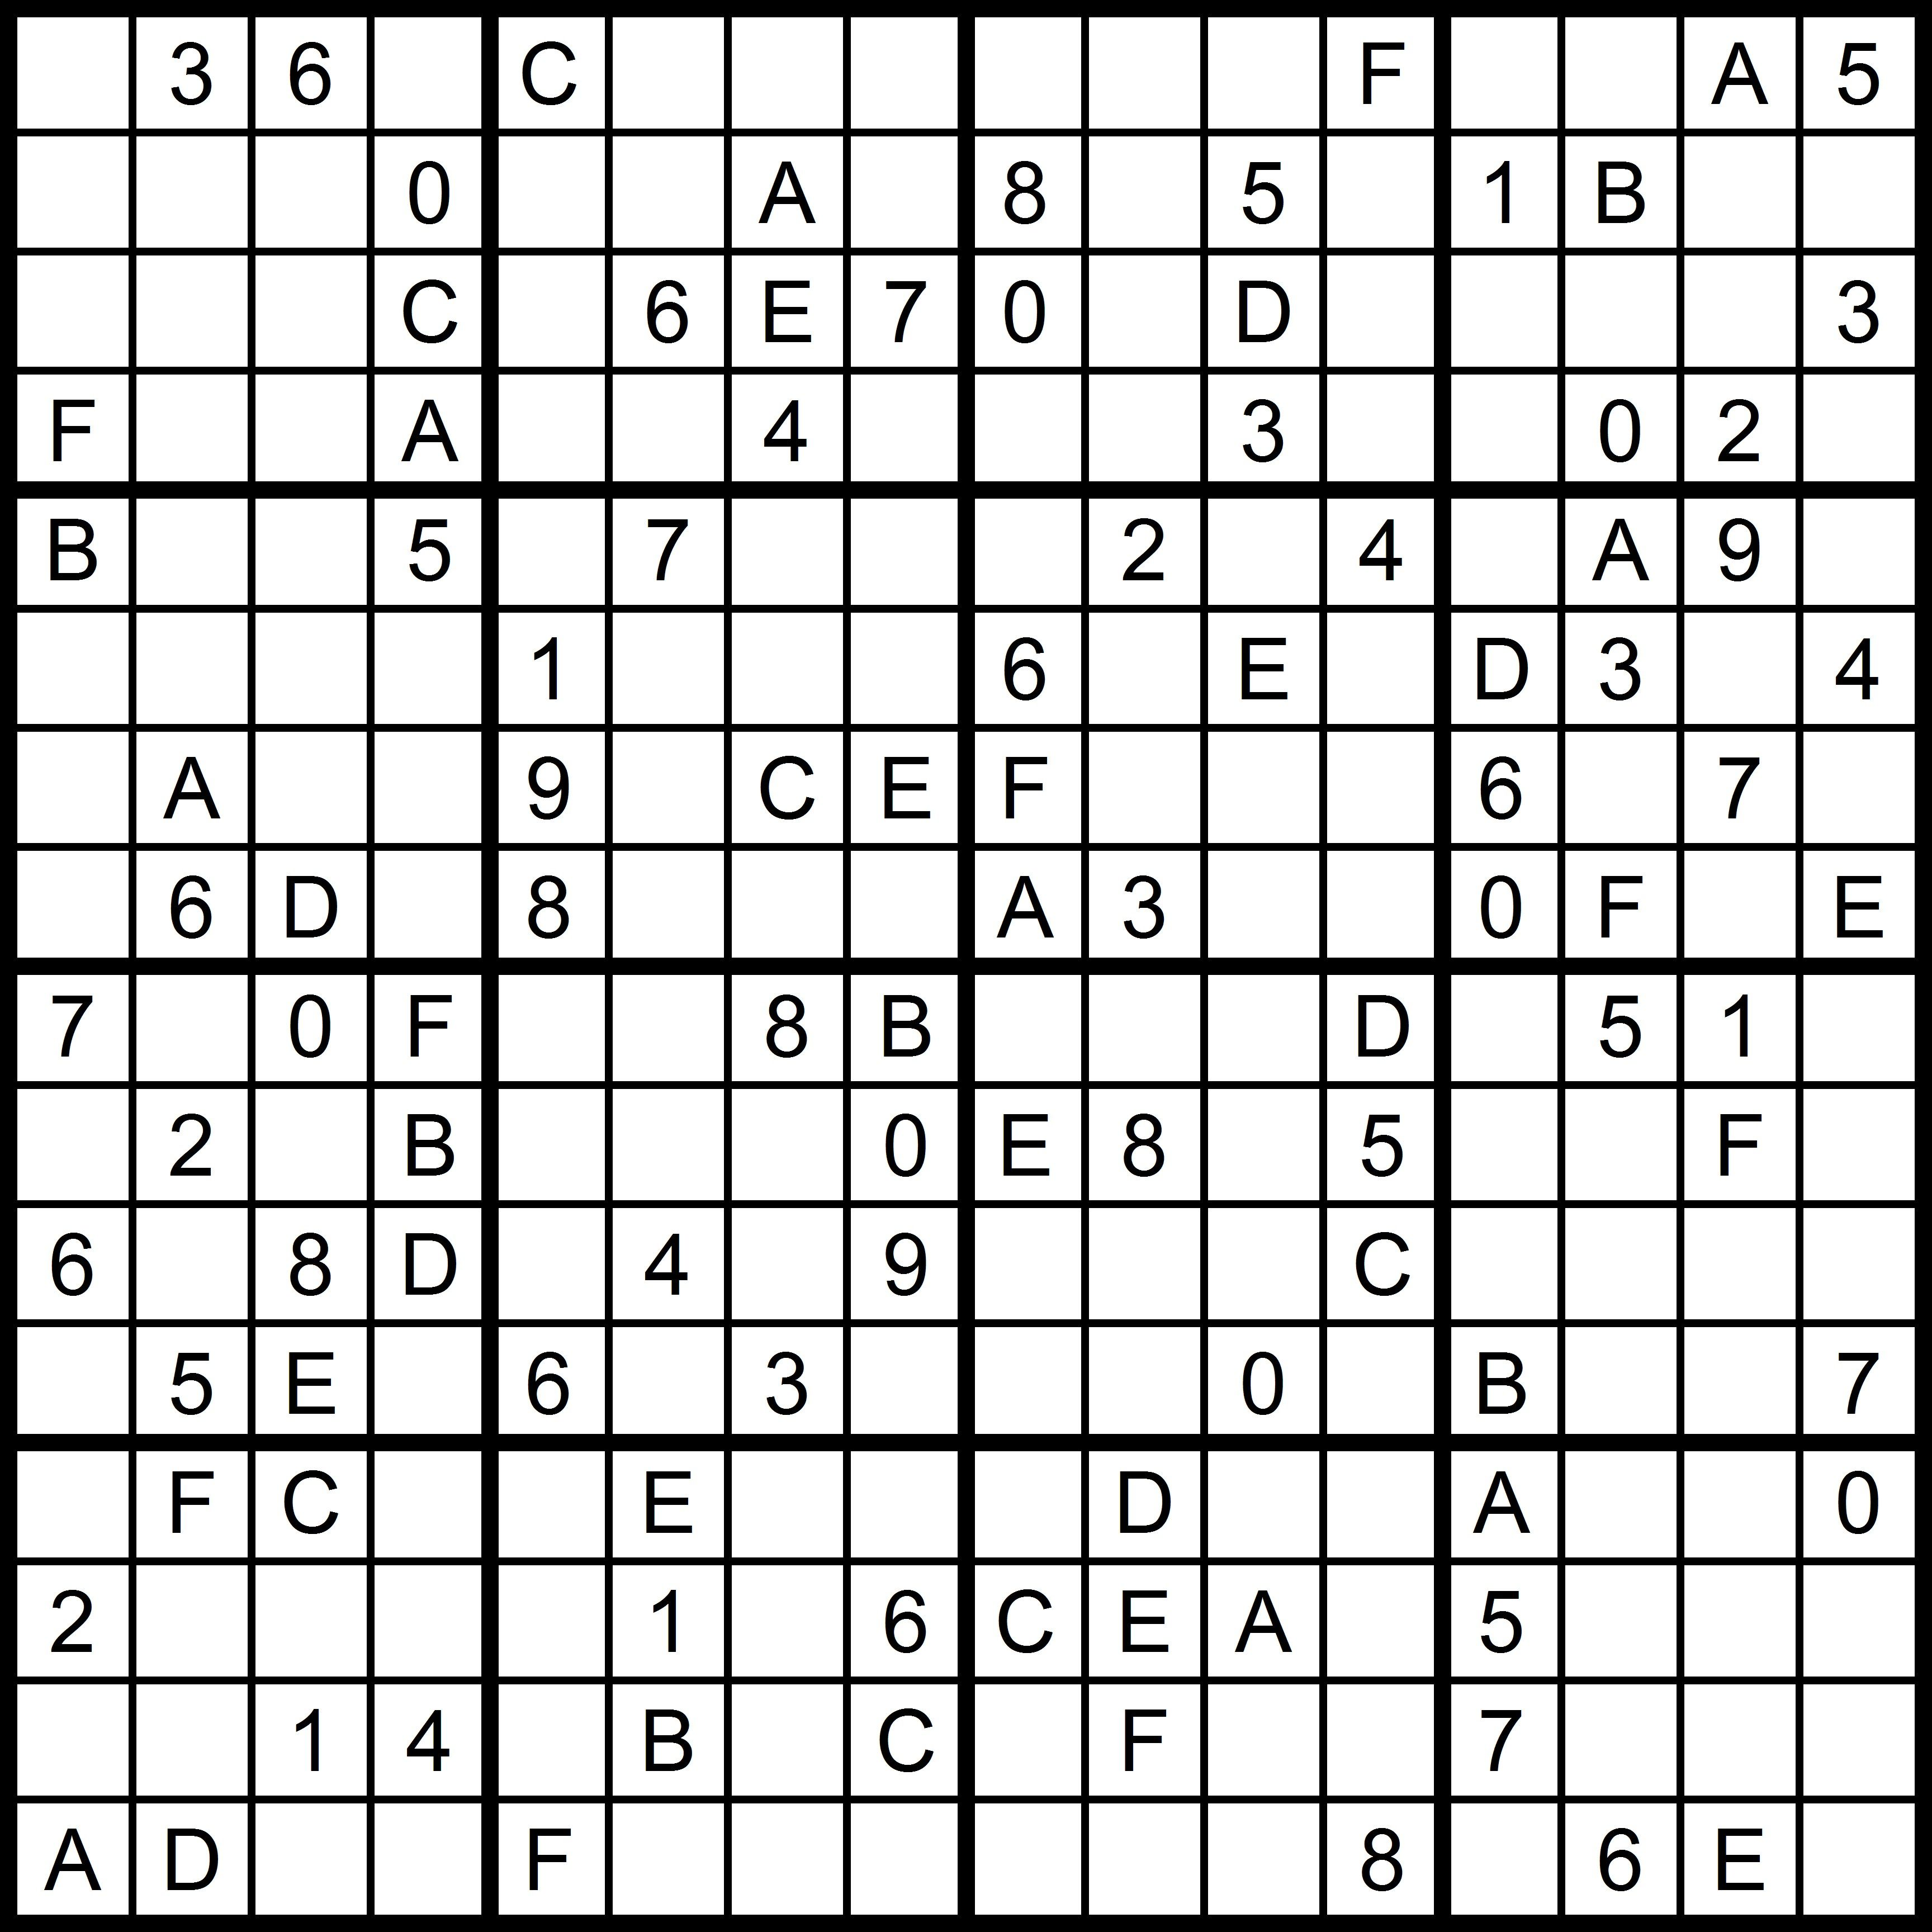 photograph relating to Sudoku 16x16 Printable titled Sudoku Letters - Letter.BestKitchenView.CO